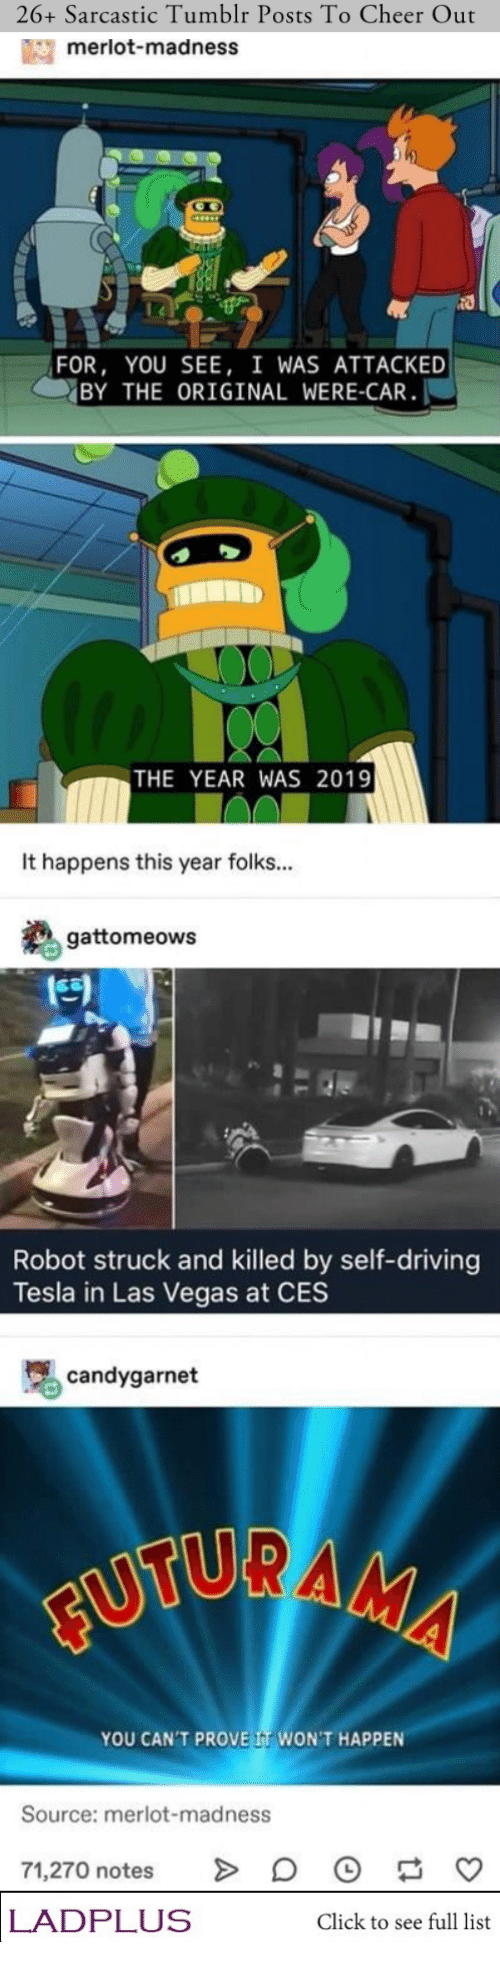 sarcastic: 26+ Sarcastic Tumblr Posts To Cheer Out  merlot-madness  FOR, YOU SEE, I WAS ATTACKED  BY THE ORIGINAL WERE-CAR  THE YEAR WAS 2019  It happens this year folks...  gattomeows  Robot struck and killed by self-driving  Tesla in Las Vegas at CES  candygarnet  FUTURAMA  YOU CAN'T PROVE IT WON'T HAPPEN  Source: merlot-madness  71,270 notes  LADPLUS  Click to see full list